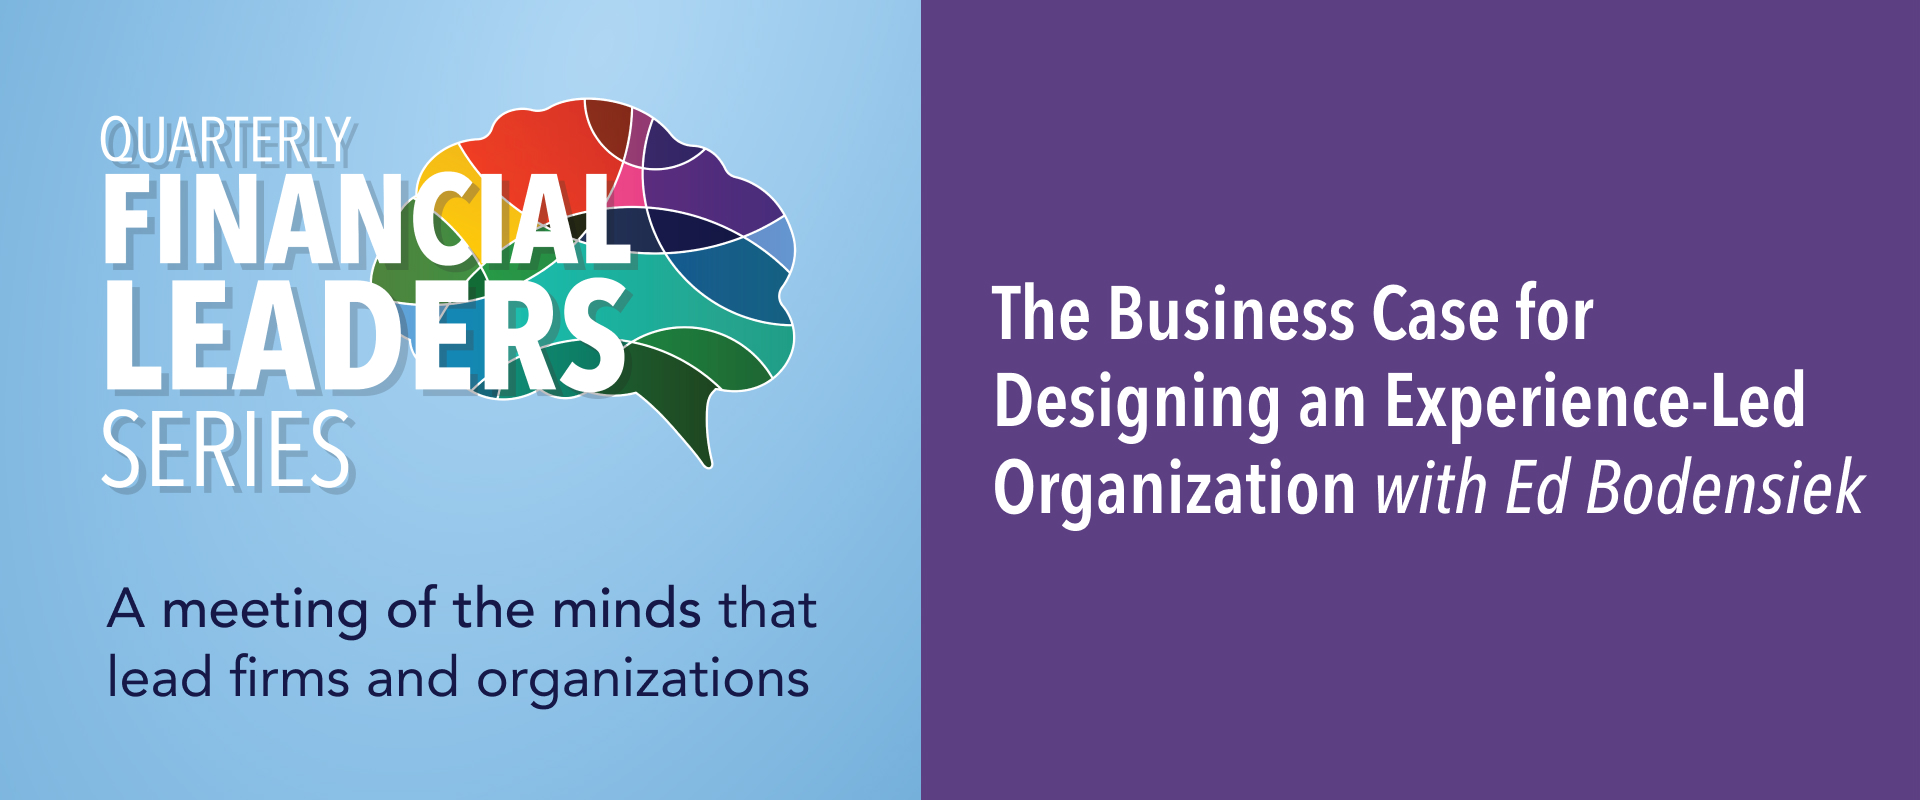 Quarterly Financial Leaders Series: The Business Case for Designing an Experience-Led Organization